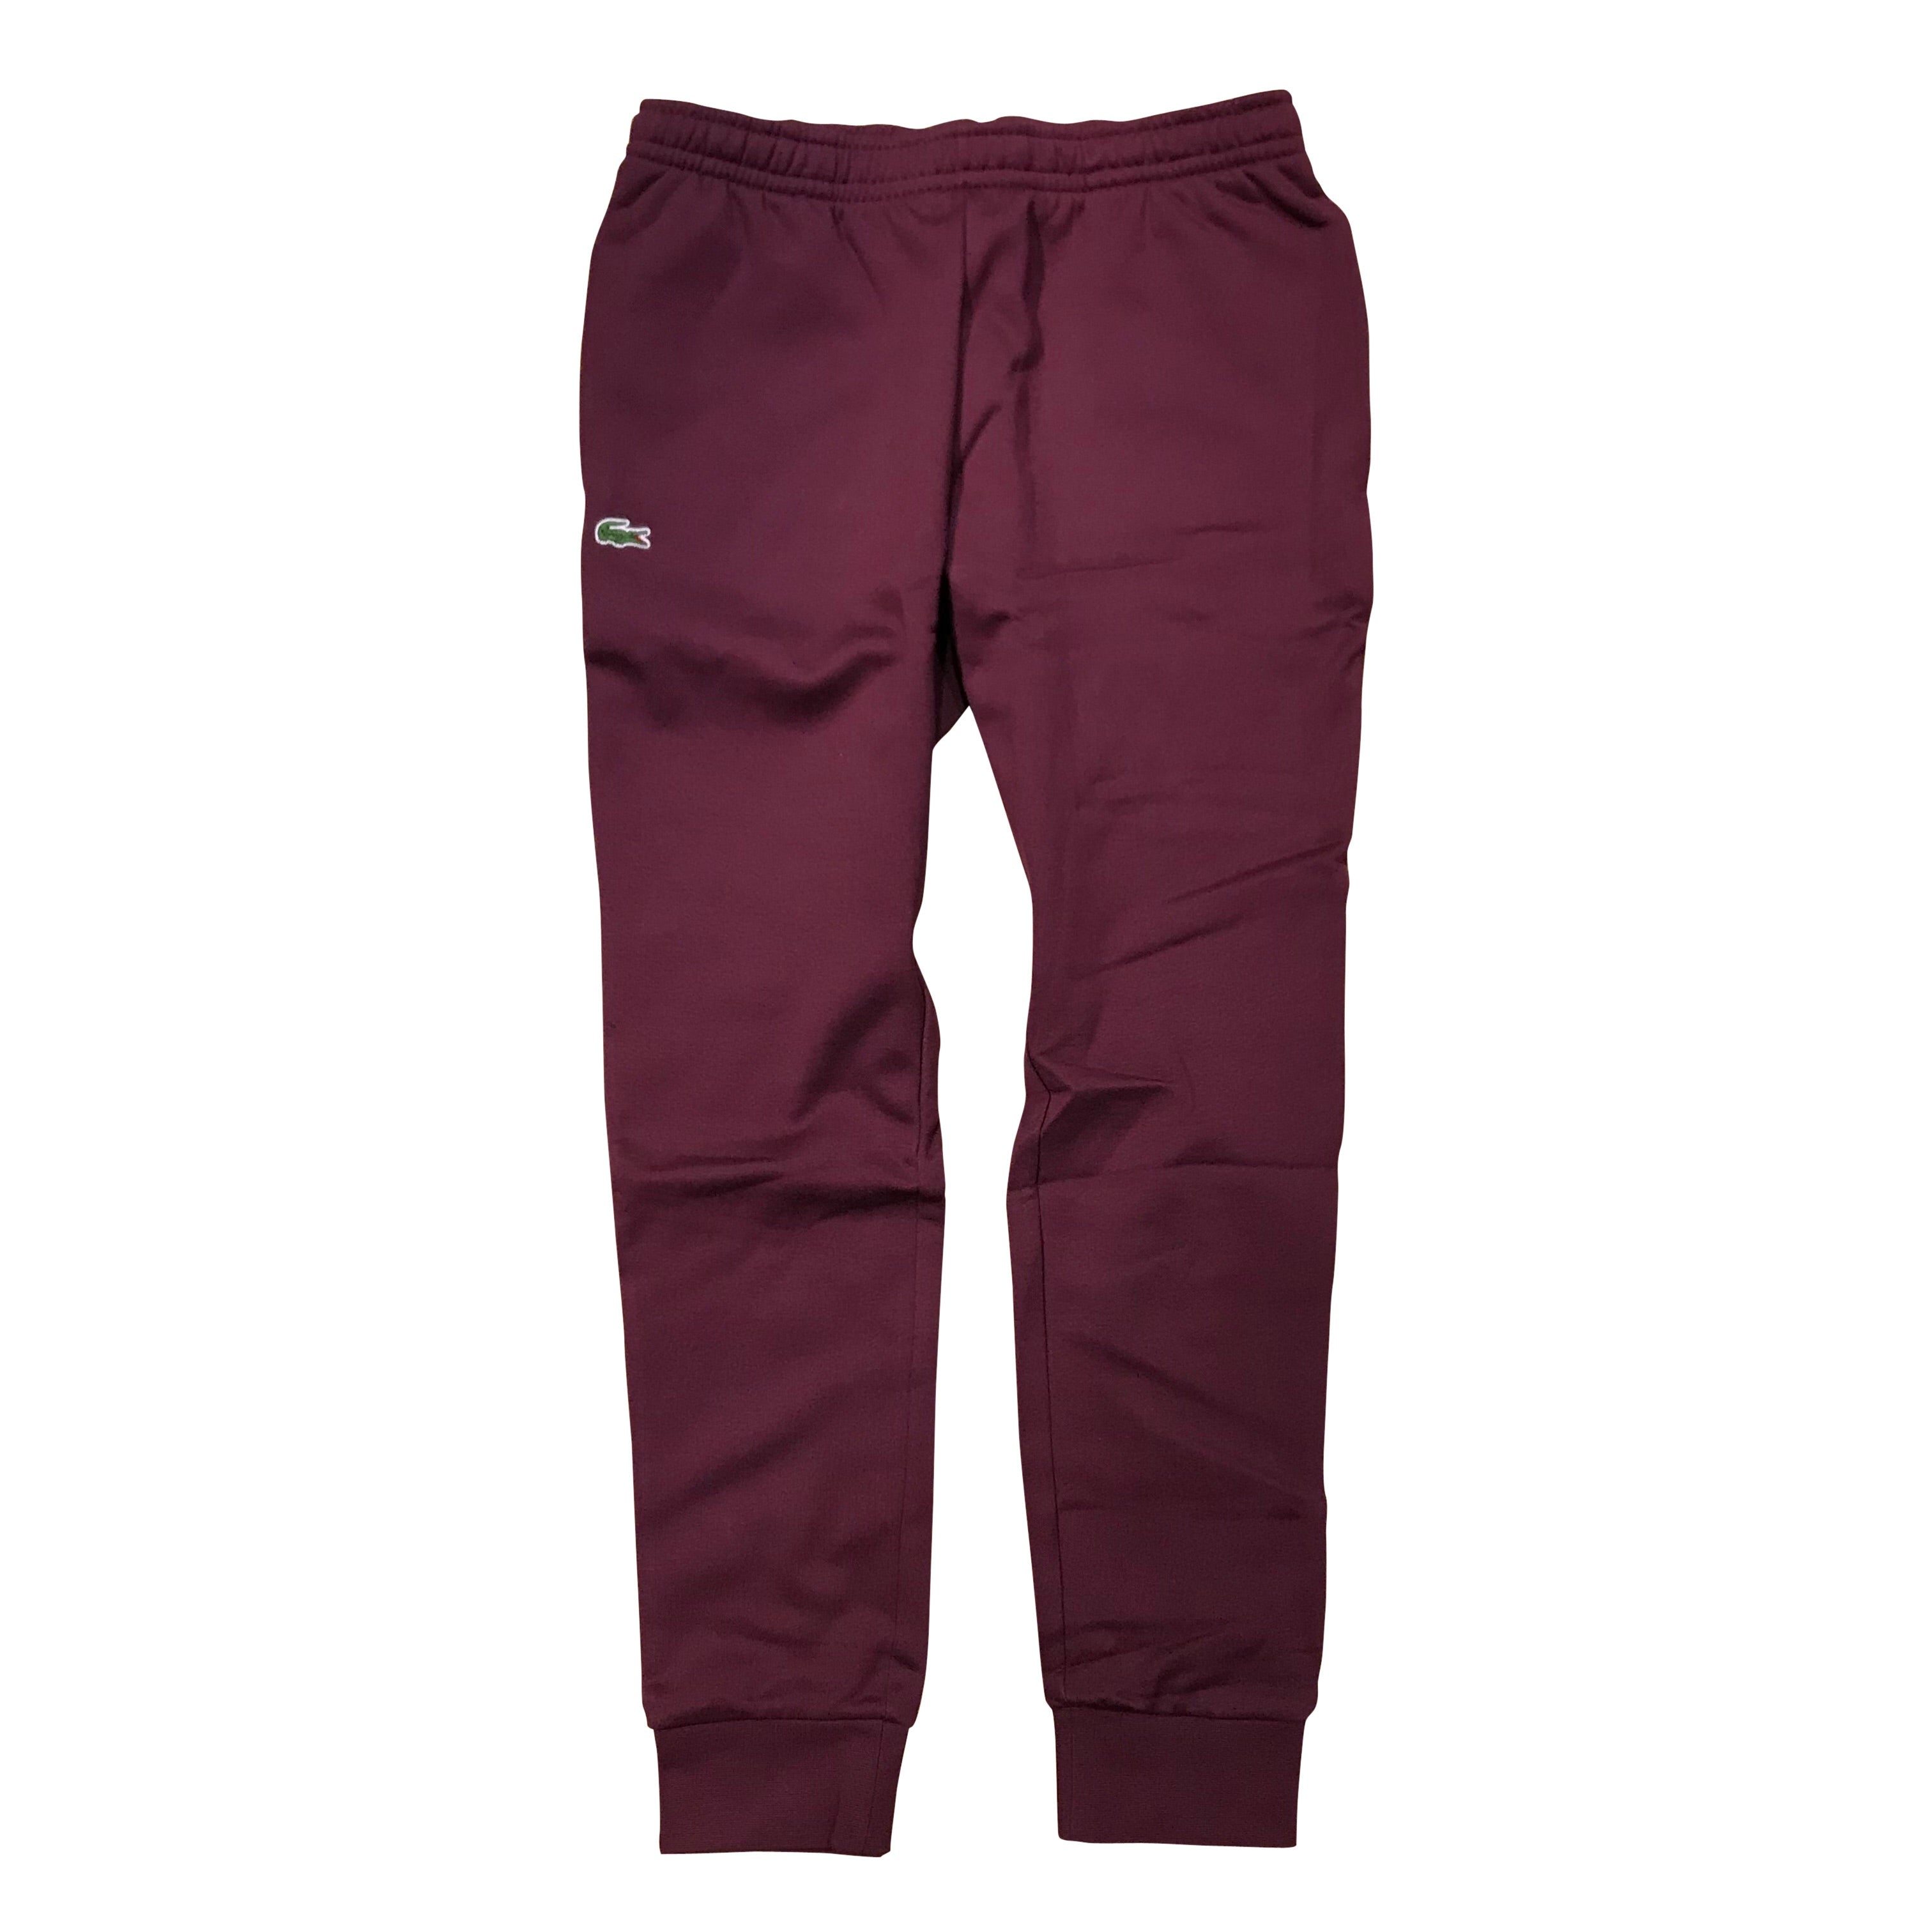 LACOSTE JOGGING PANT BLACKBERRY CHINE